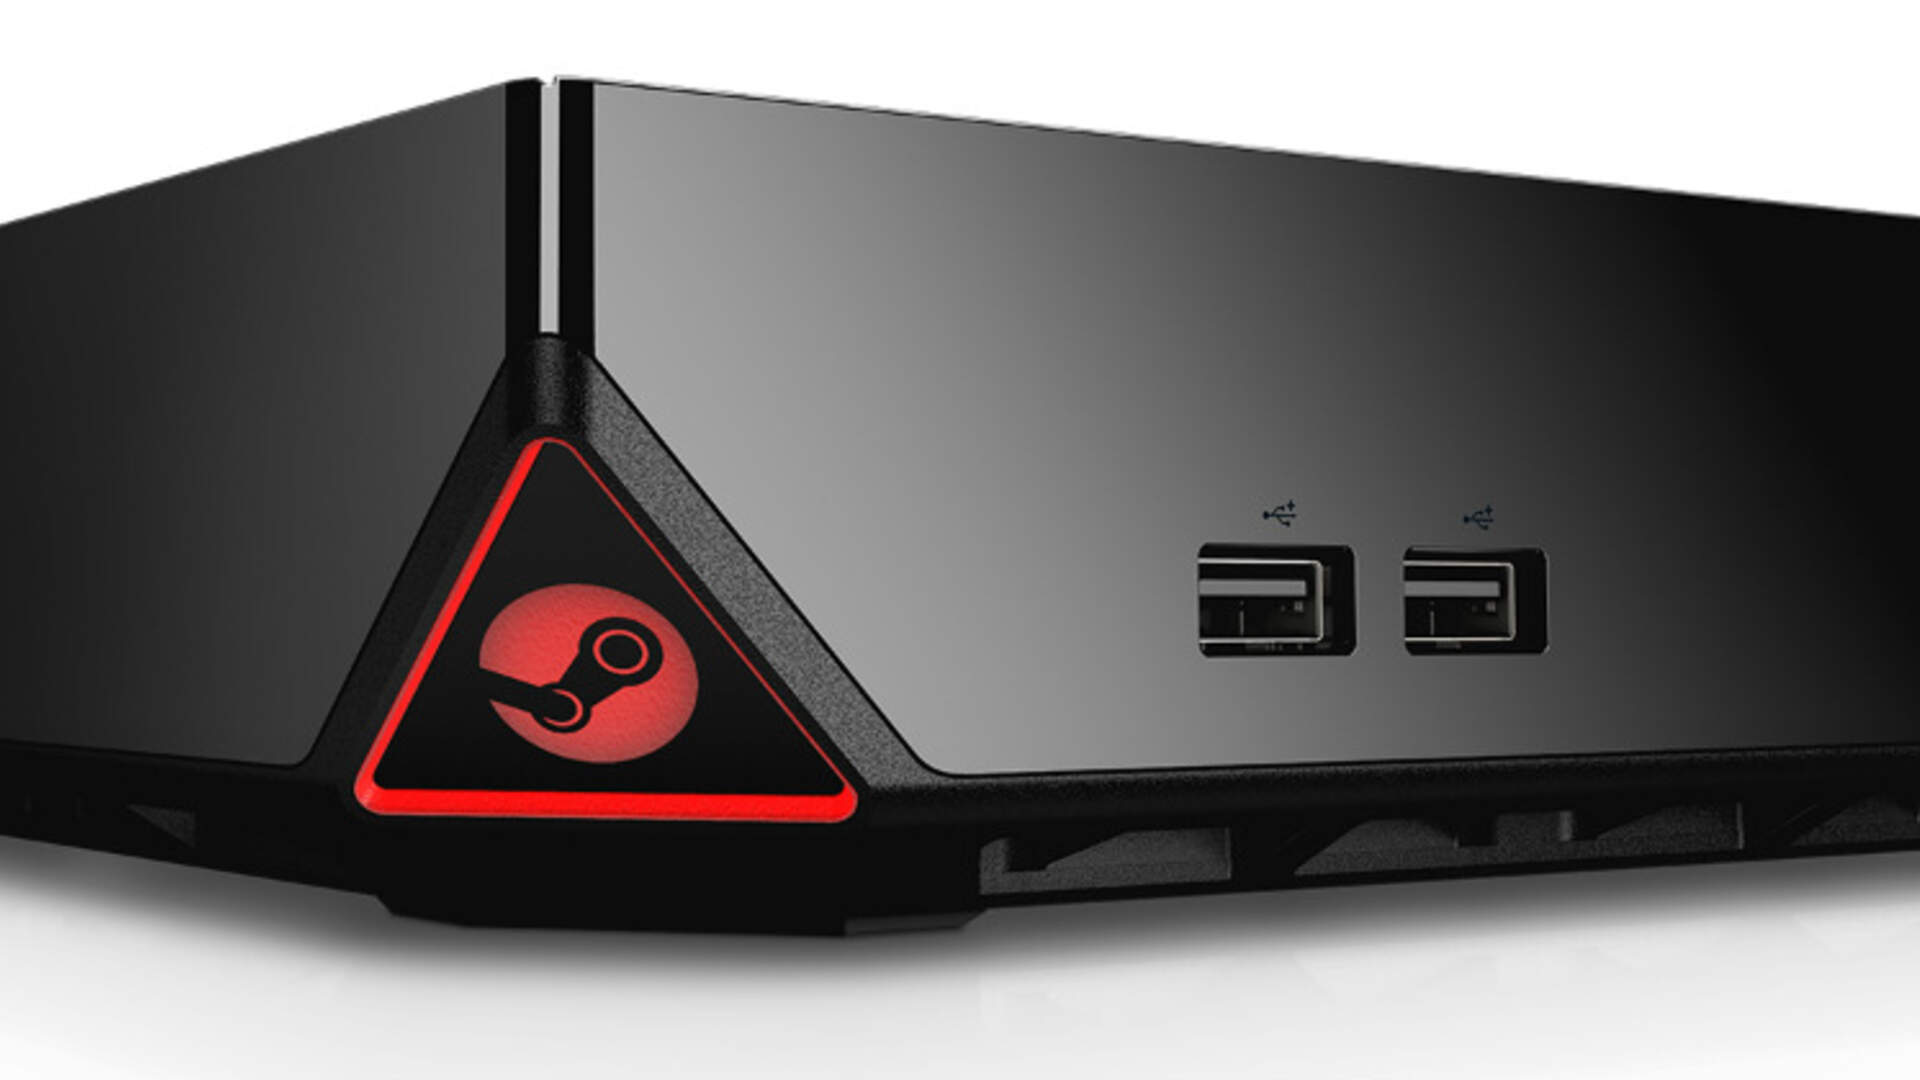 Valve Quietly Removes Steam Machines From Its Hardware Section [Update: Valve Reaffirms Commitment to Linux]